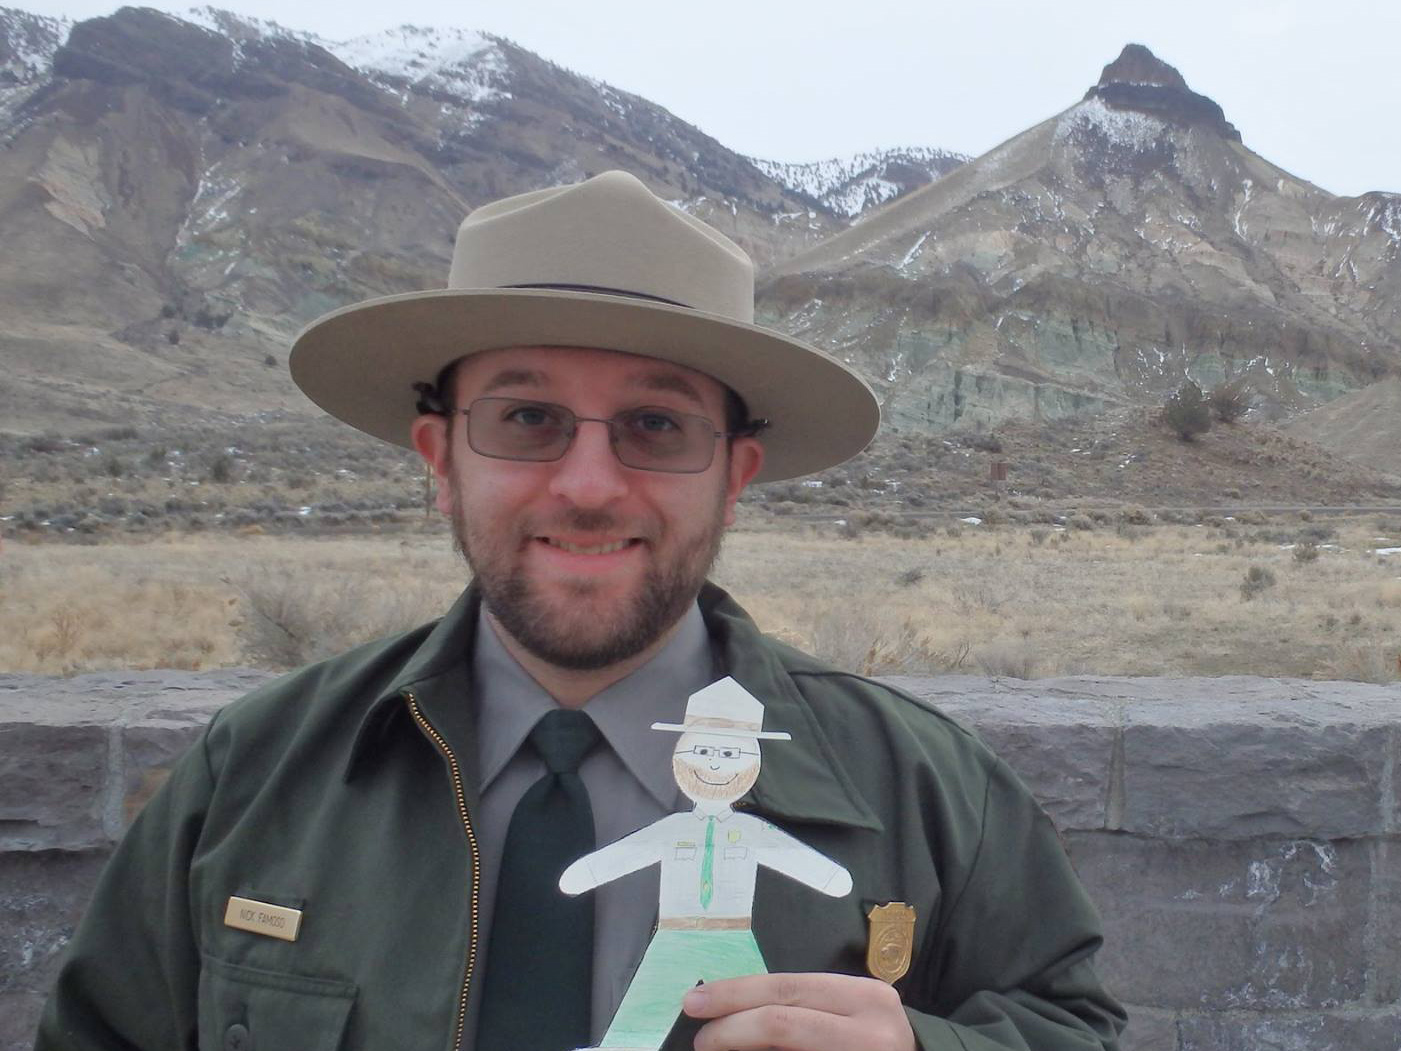 Nick Famoso posing with a Flat Stanley